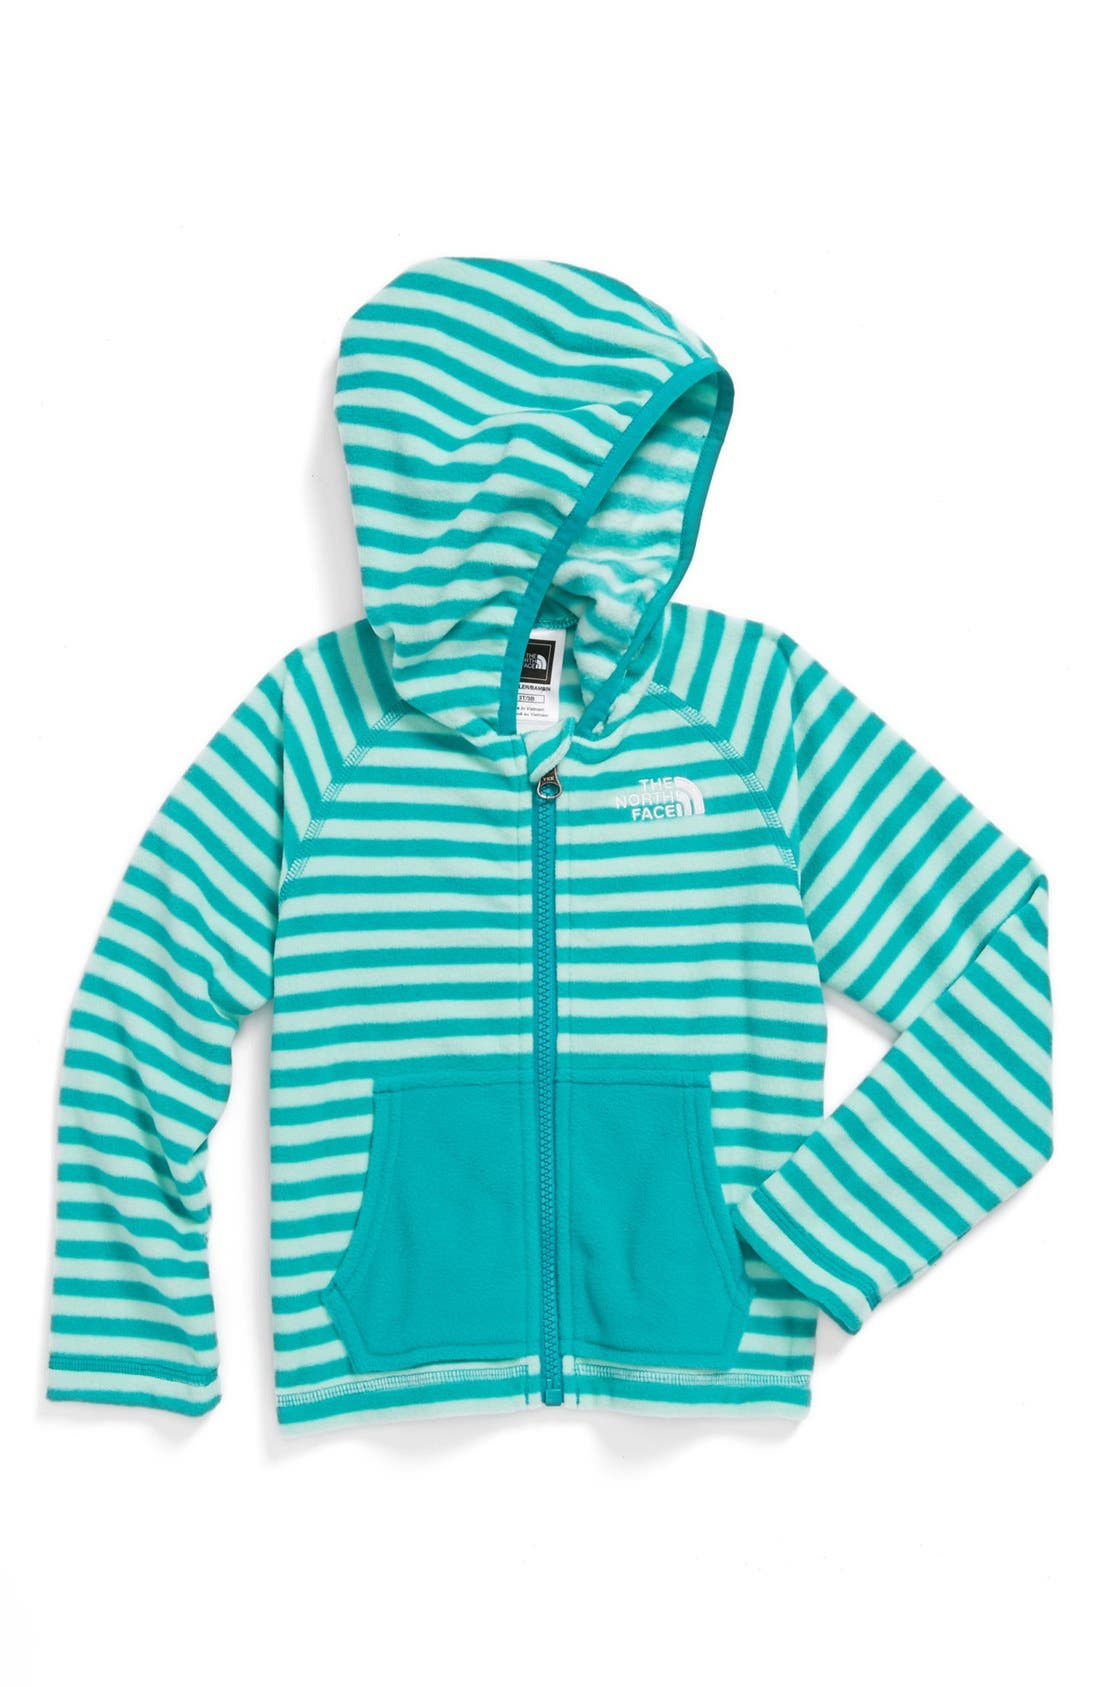 Alternate Image 1 Selected - The North Face 'Novelty Glacier' Full Zip Fleece Hoodie (Toddler Boys)